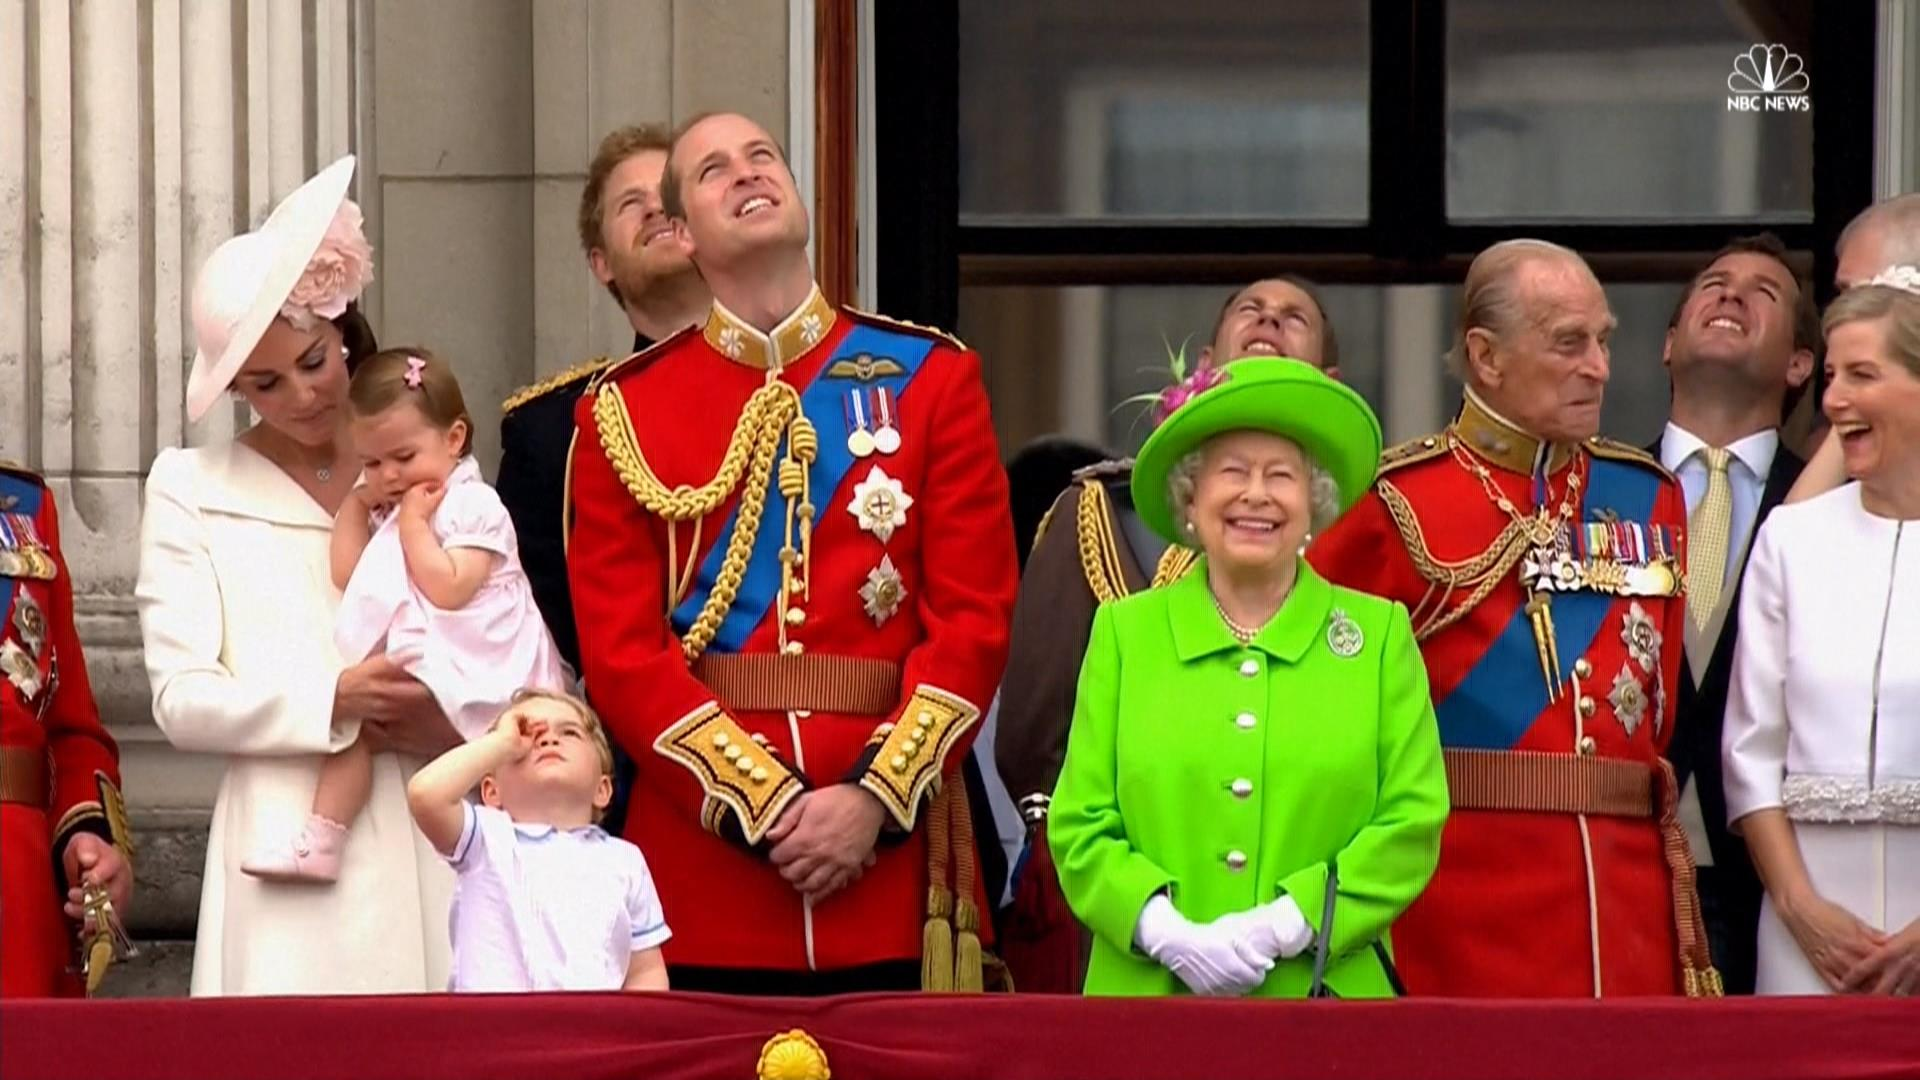 Buckingham Palace Facts Queen Elizabeth Celebrates Official Birthday At Buckingham